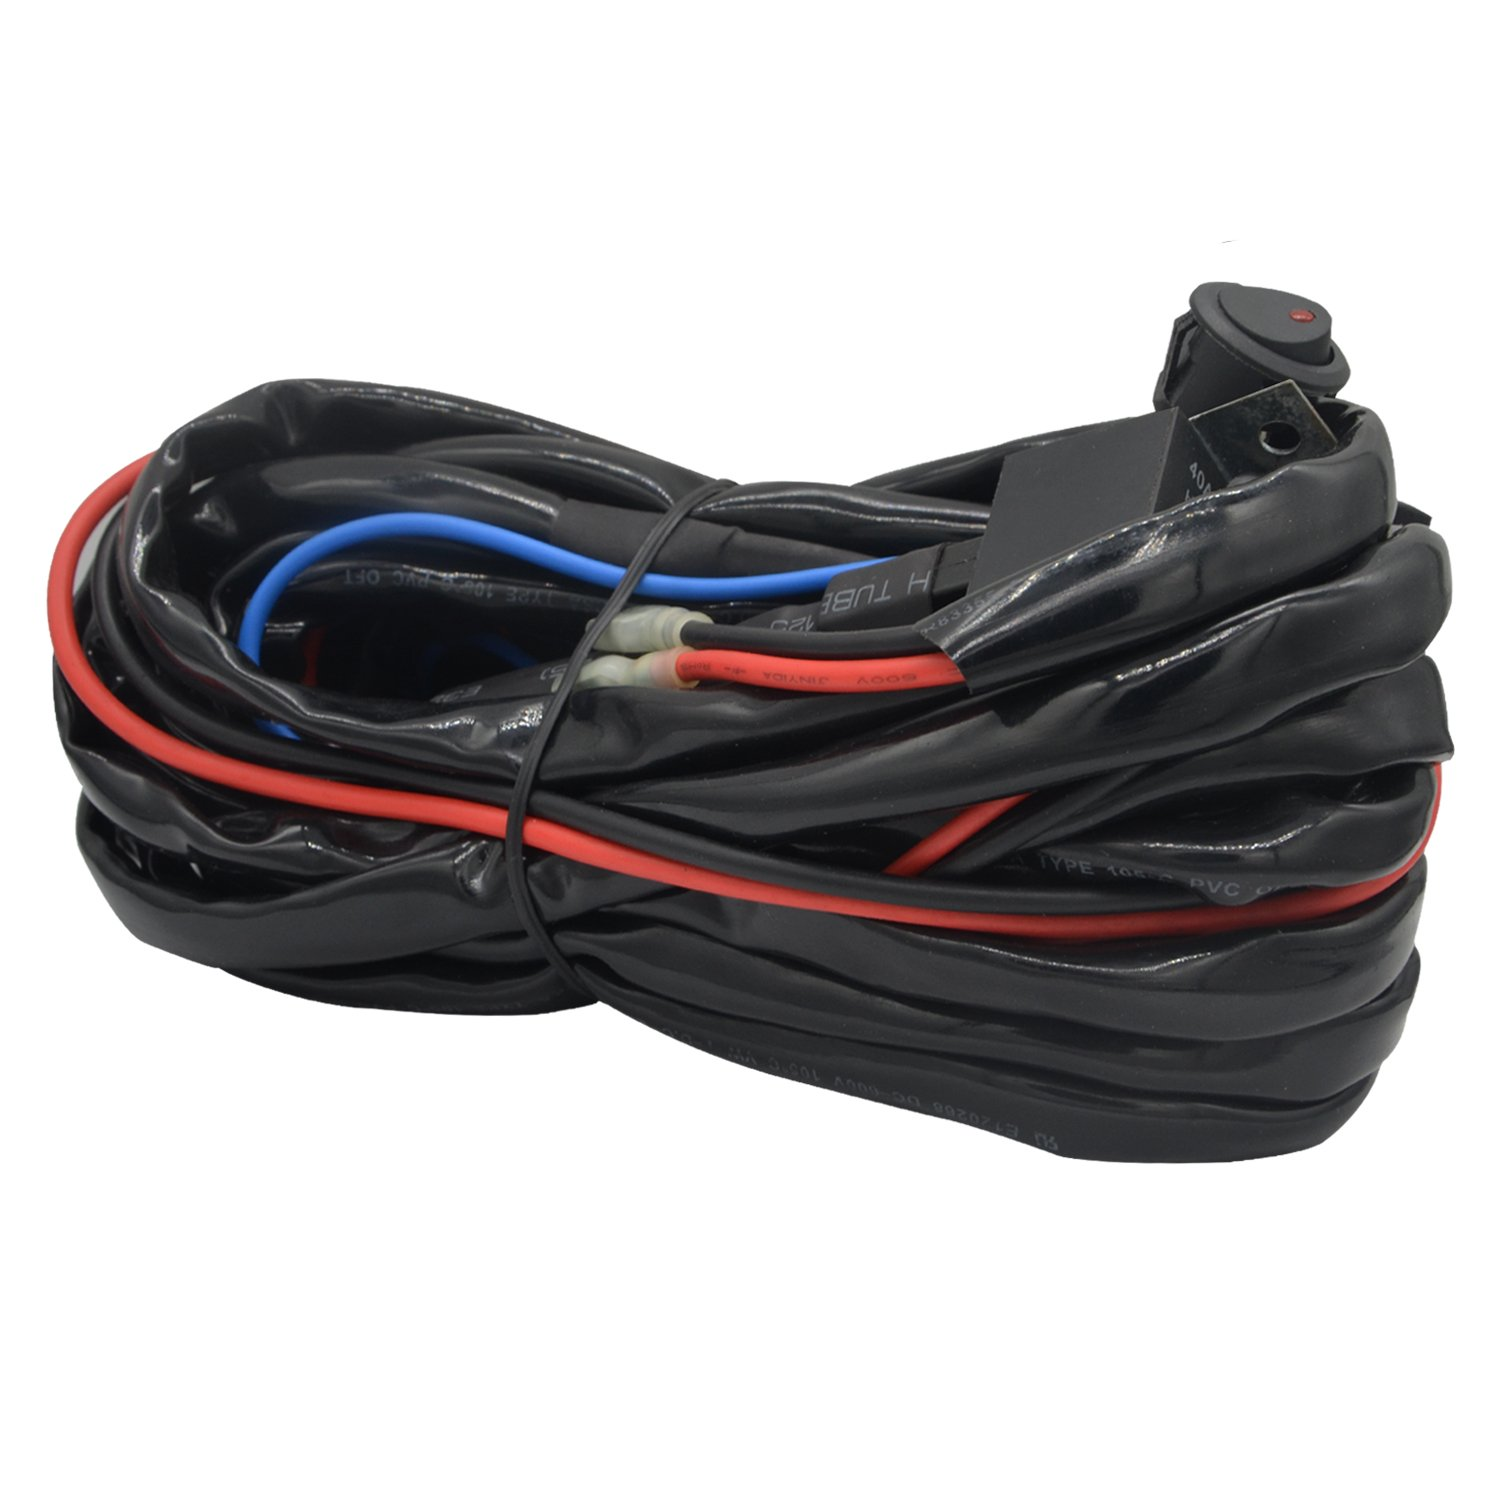 71hdbgsGjCL._SL1500_ amazon com wiring harnesses electrical automotive ksc-wa100 wiring harness at nearapp.co